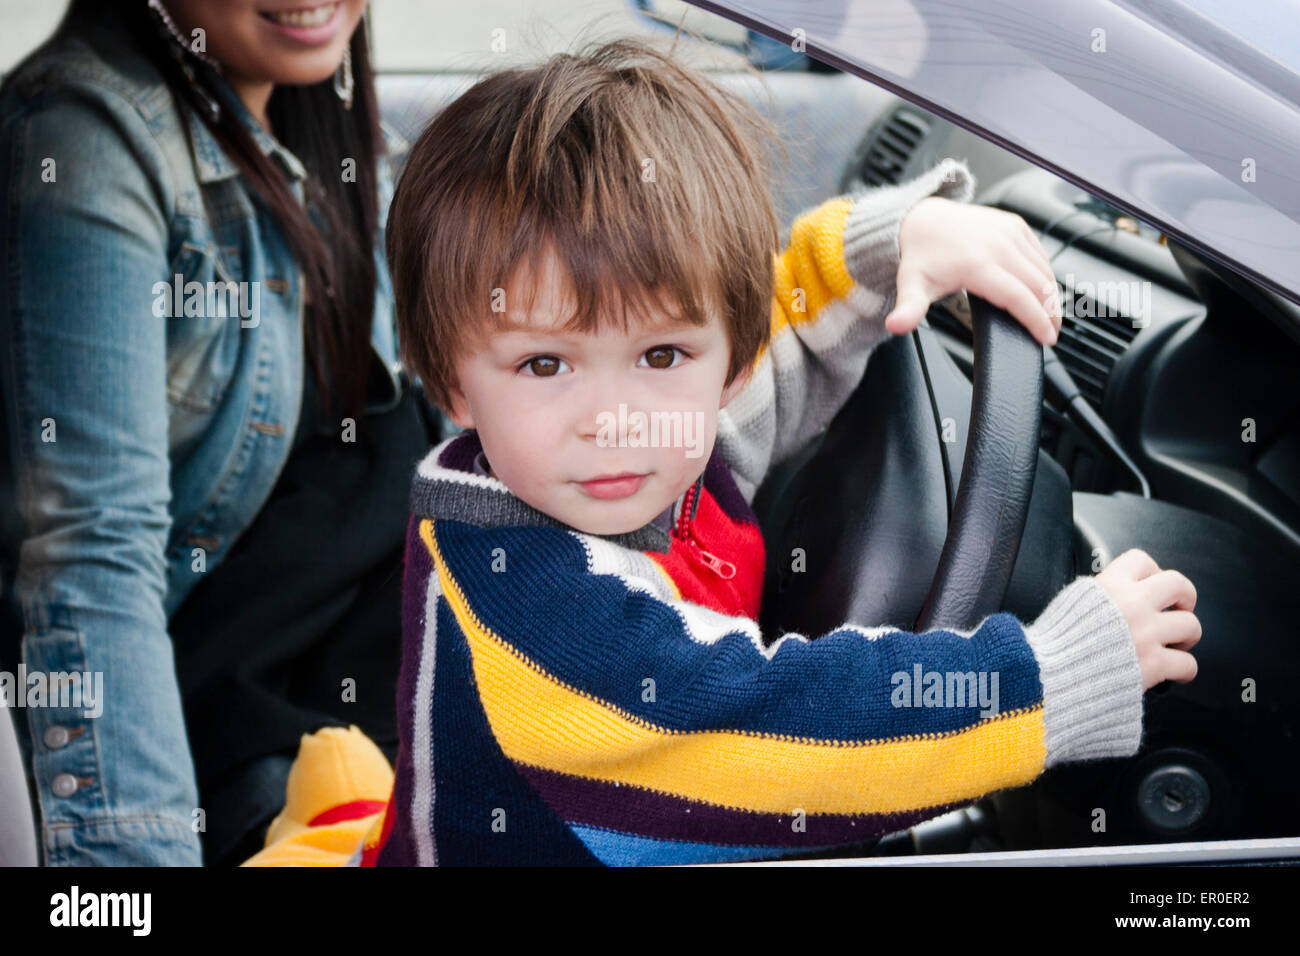 3 4 Year Old Caucasian Child Boy Side View Sitting In Car Seat Both Hands On Steering Wheel Face Turned To Viewer